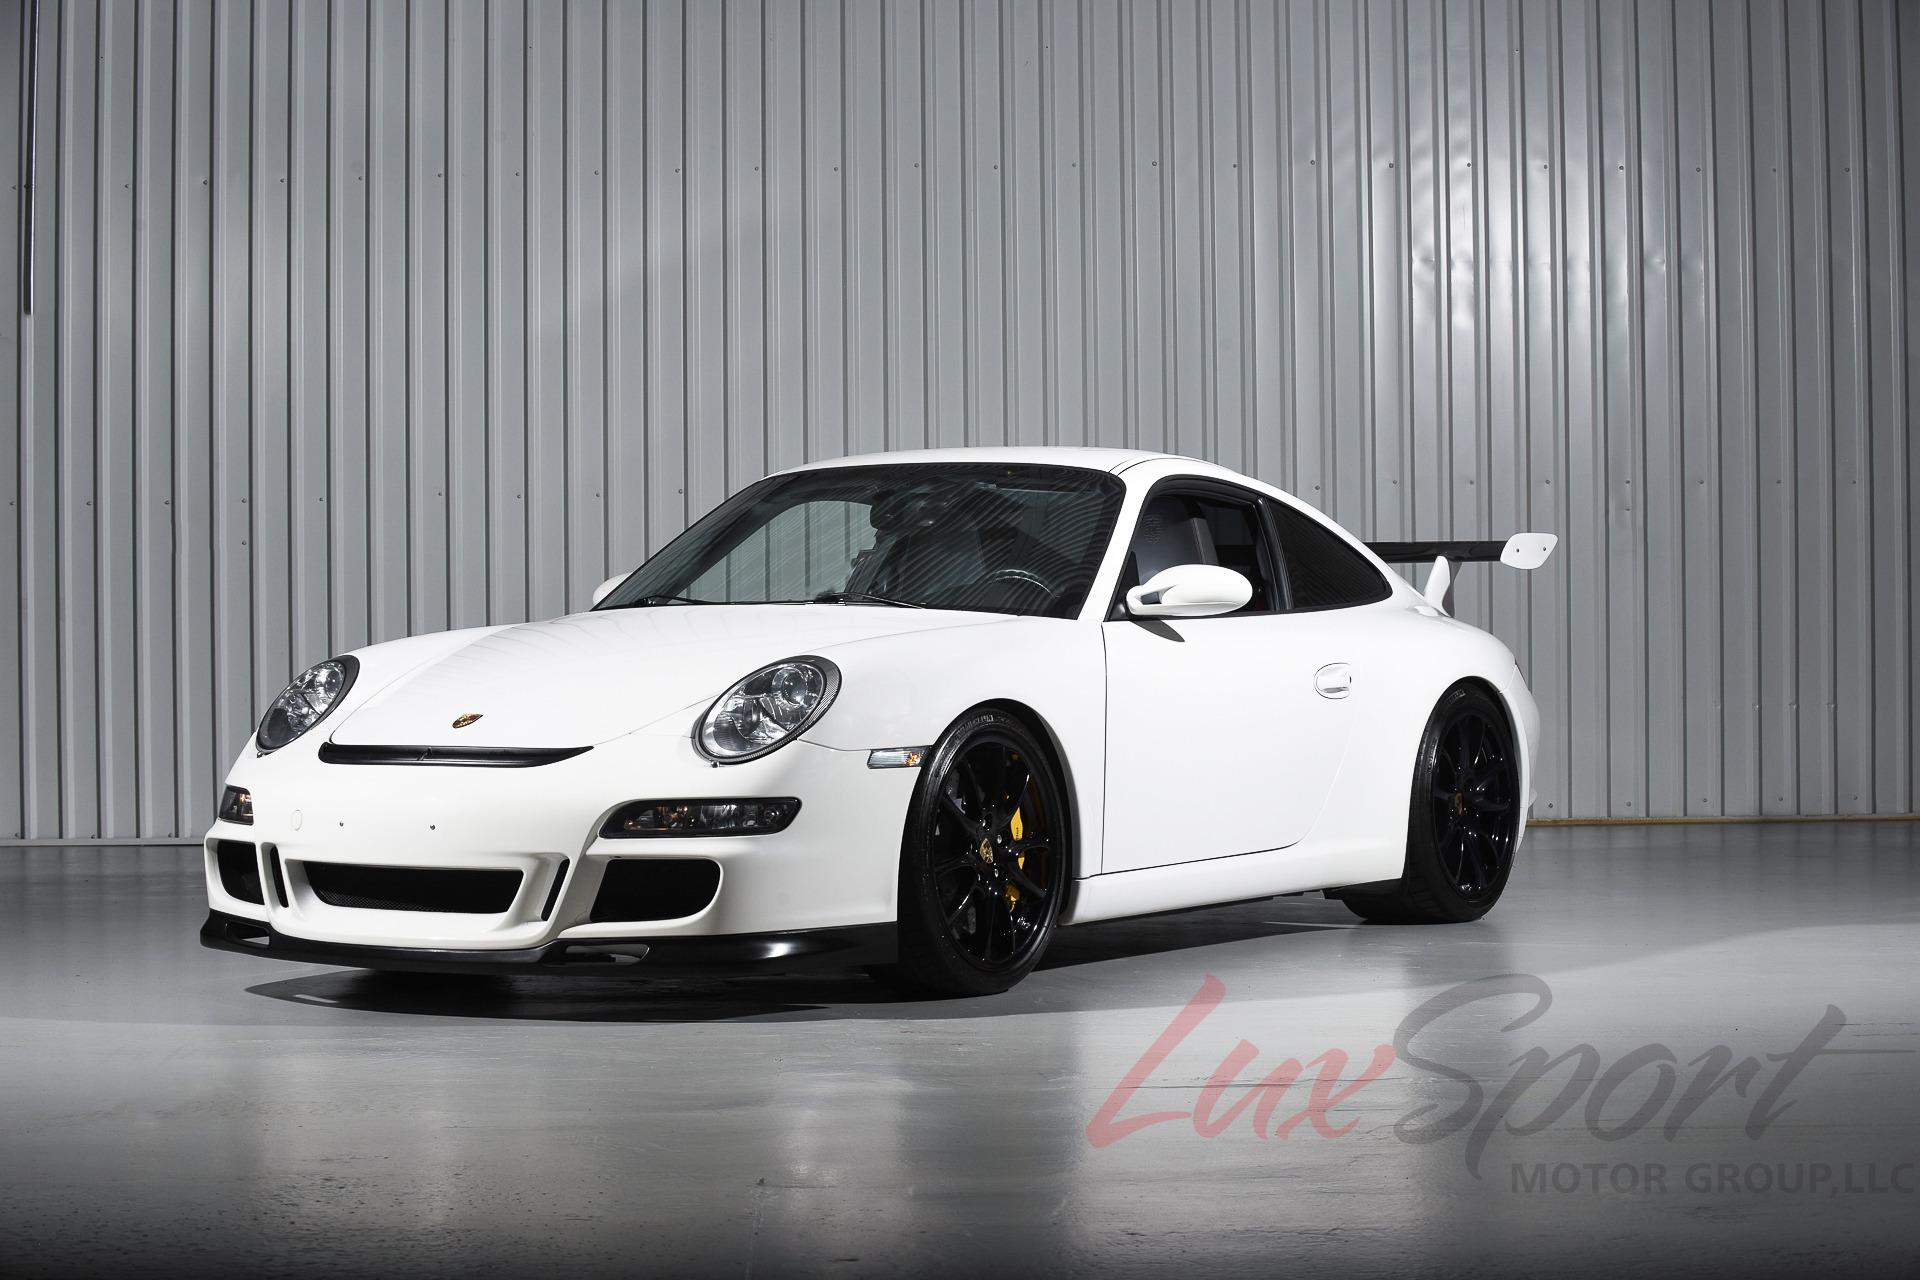 2007 porsche 911 gt3 coupe gt3 stock 2007109 for sale near new hyde park ny ny porsche dealer. Black Bedroom Furniture Sets. Home Design Ideas